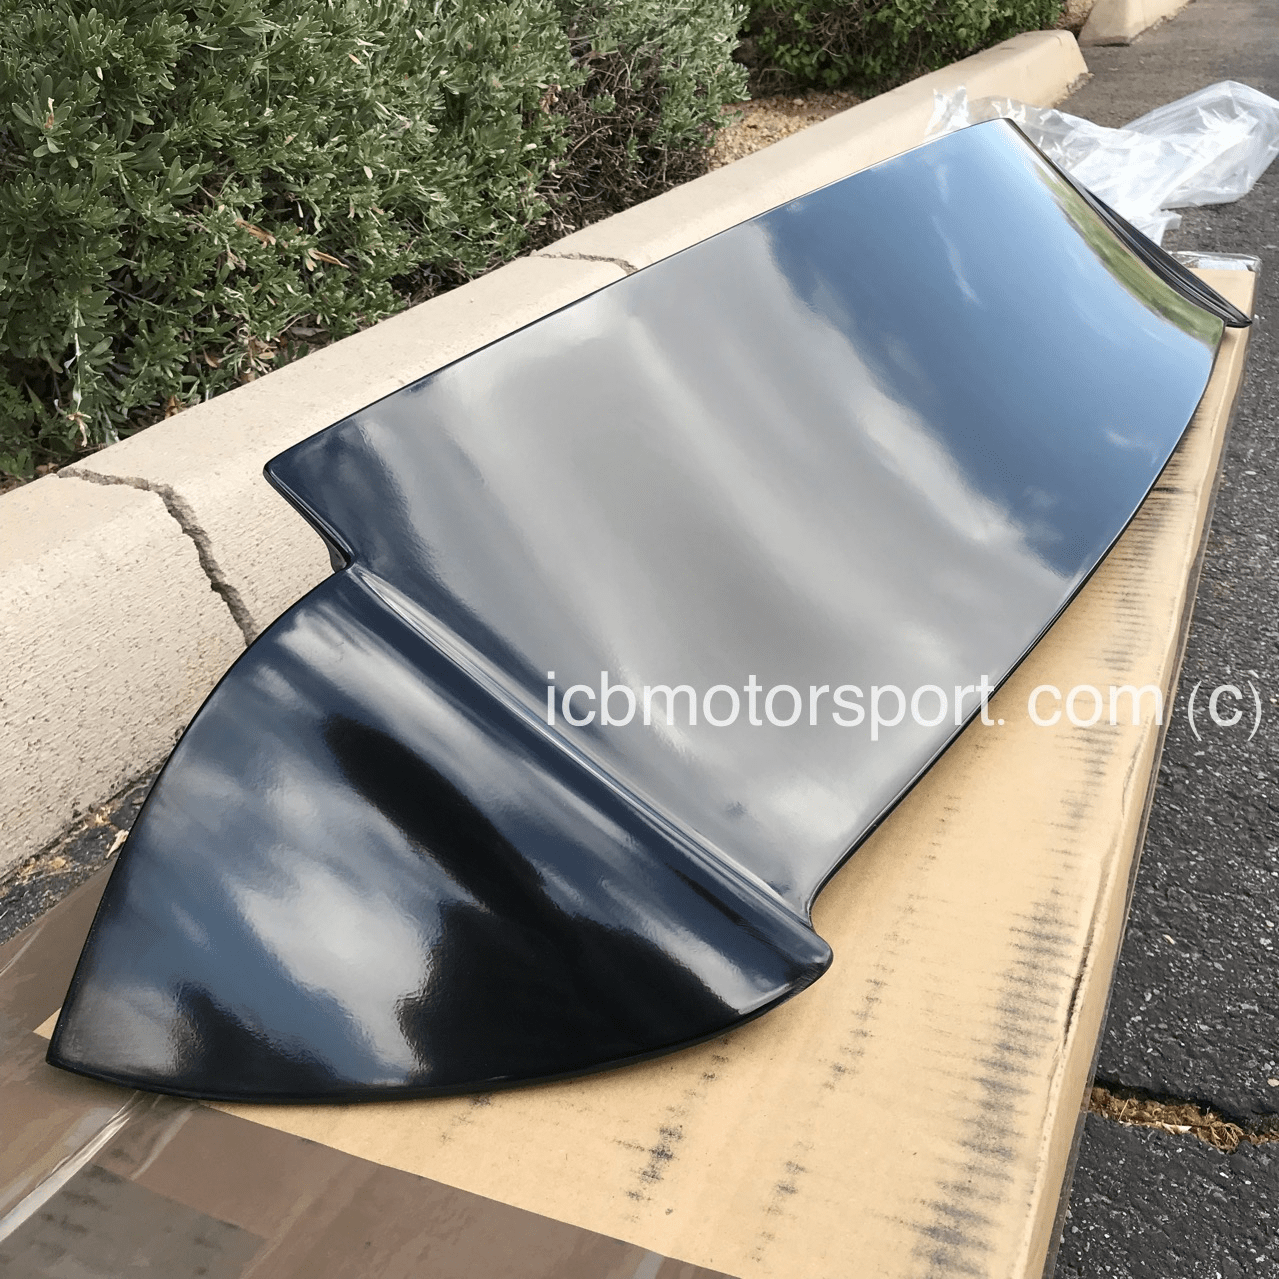 Exceed / Mode Parfume Honda Civic EG6 92-95 Hatchback Roof Spoiler